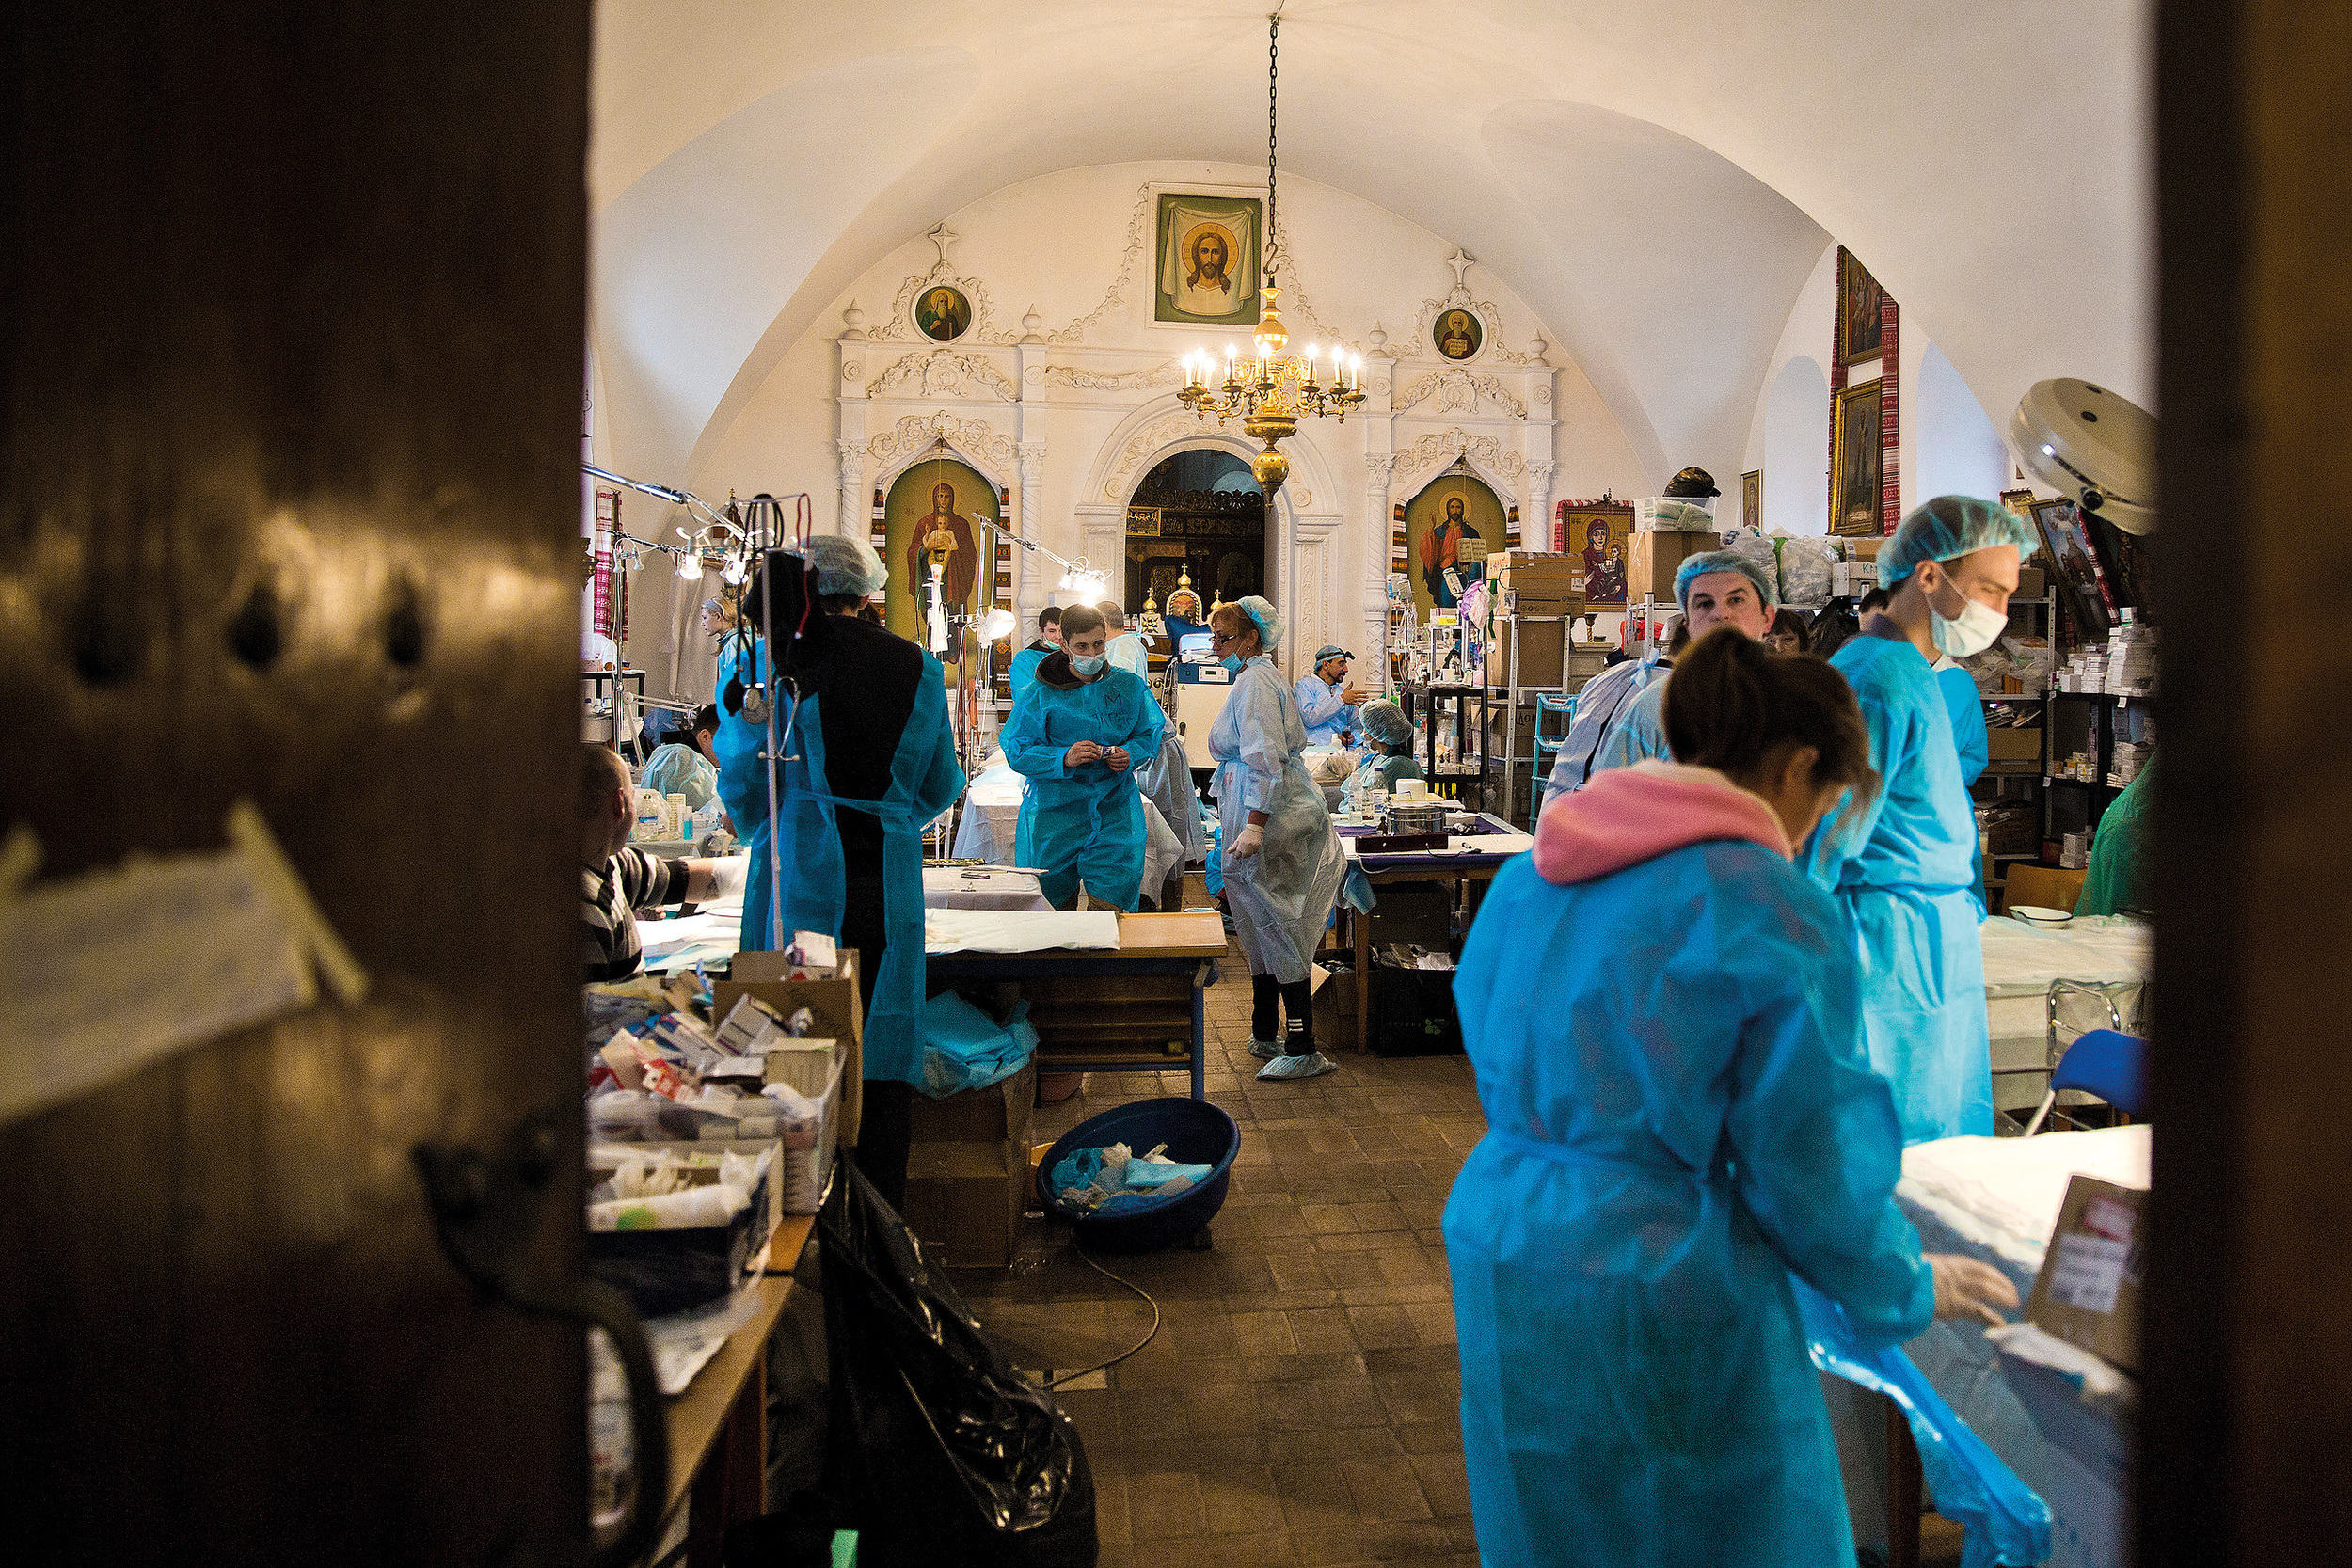 Volunteers help as doctors in the hospital organized in Kyiv's Mikhailovsky monastery after almost 100 protesters were killed with snipers' fire and hundreds were wounded